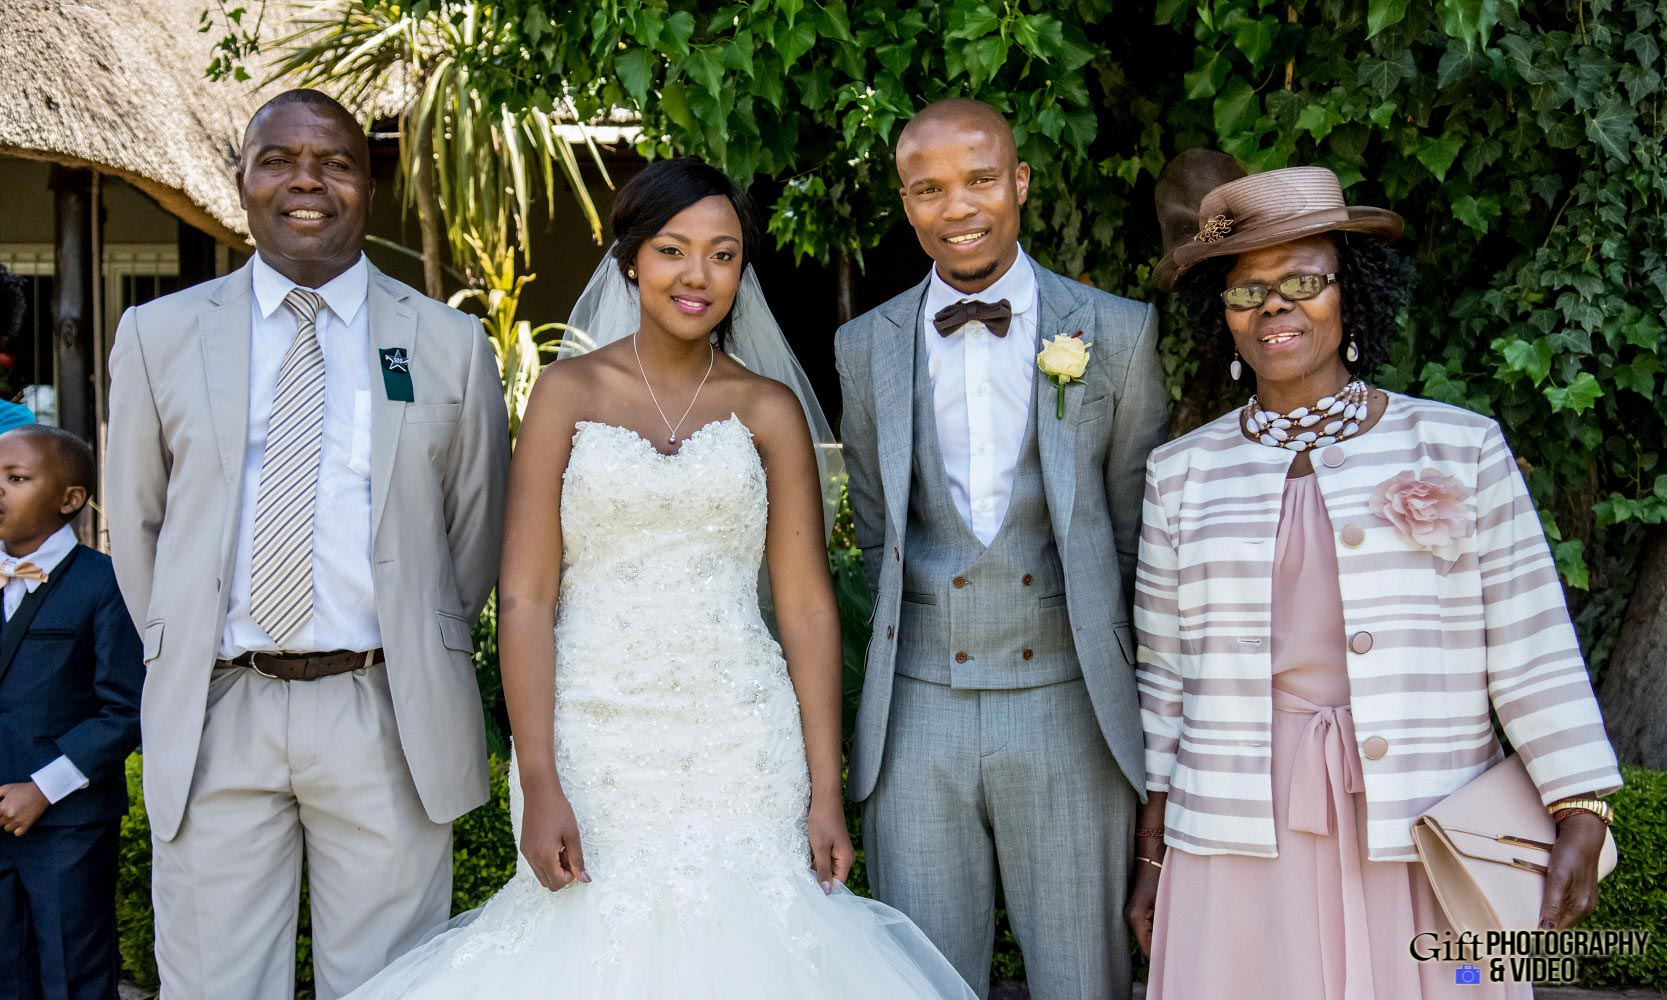 Choene & Sihle Wedding Usambara-39